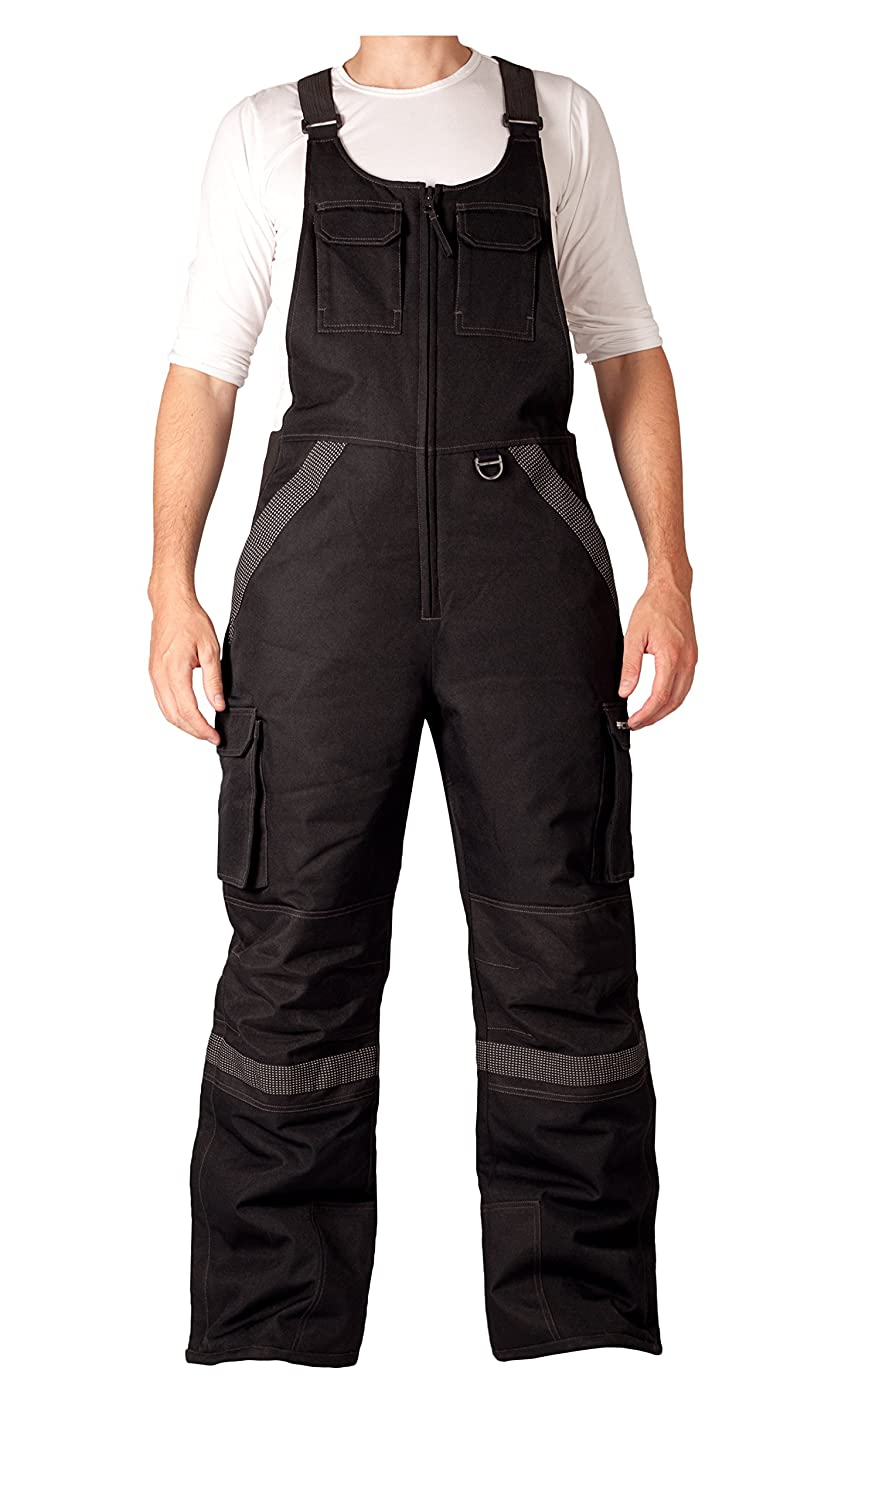 Arctix Men's Performance Overalls Tundra Bib with Added Visibility 8002